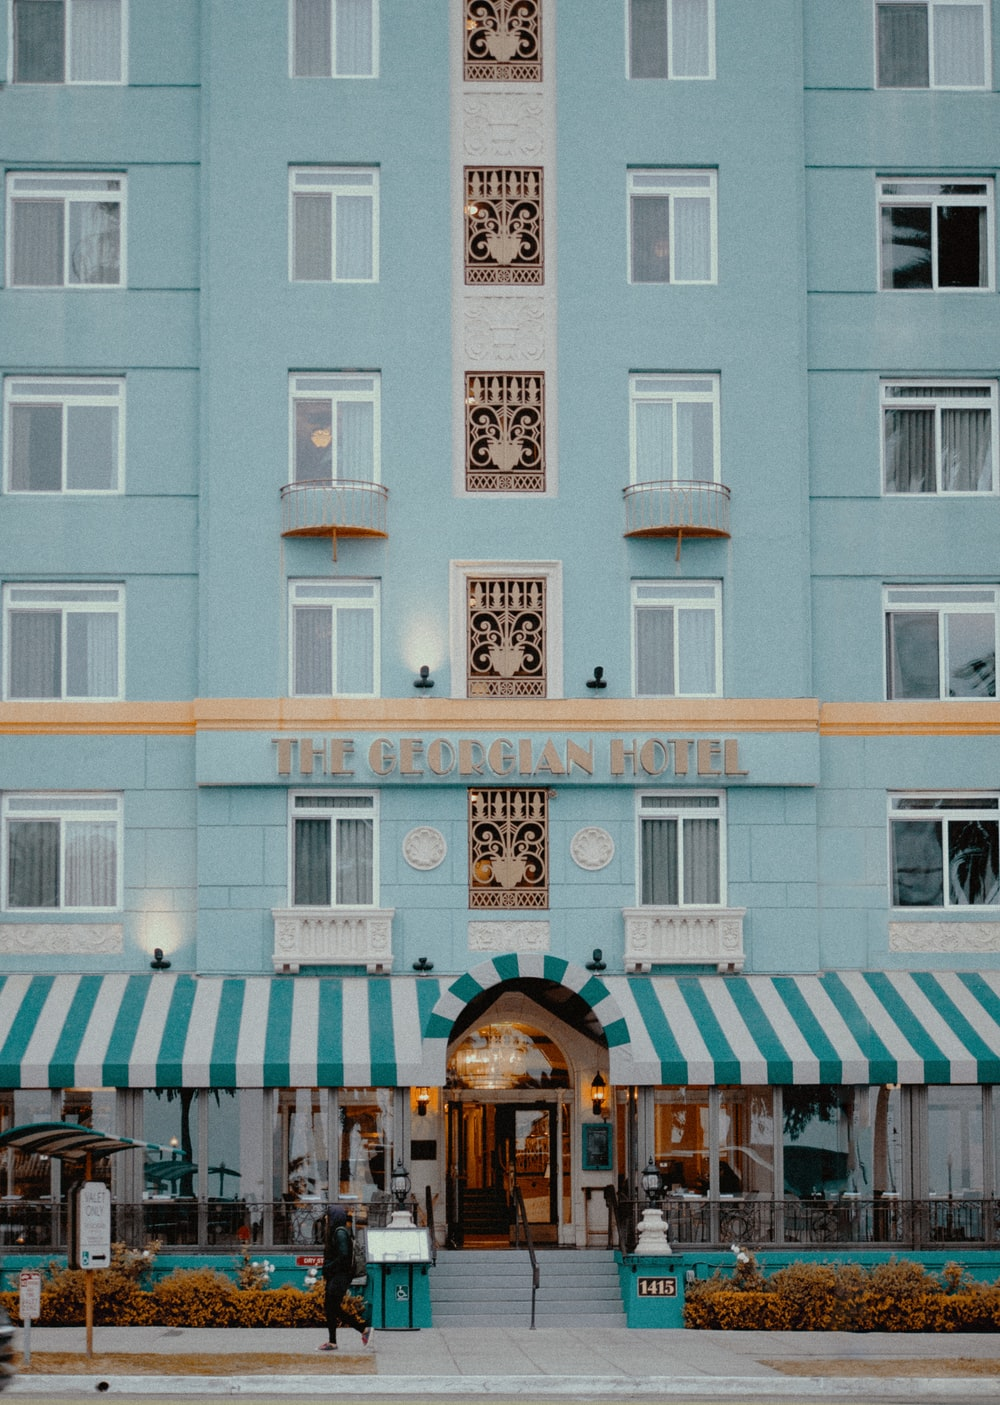 hotel with awnings